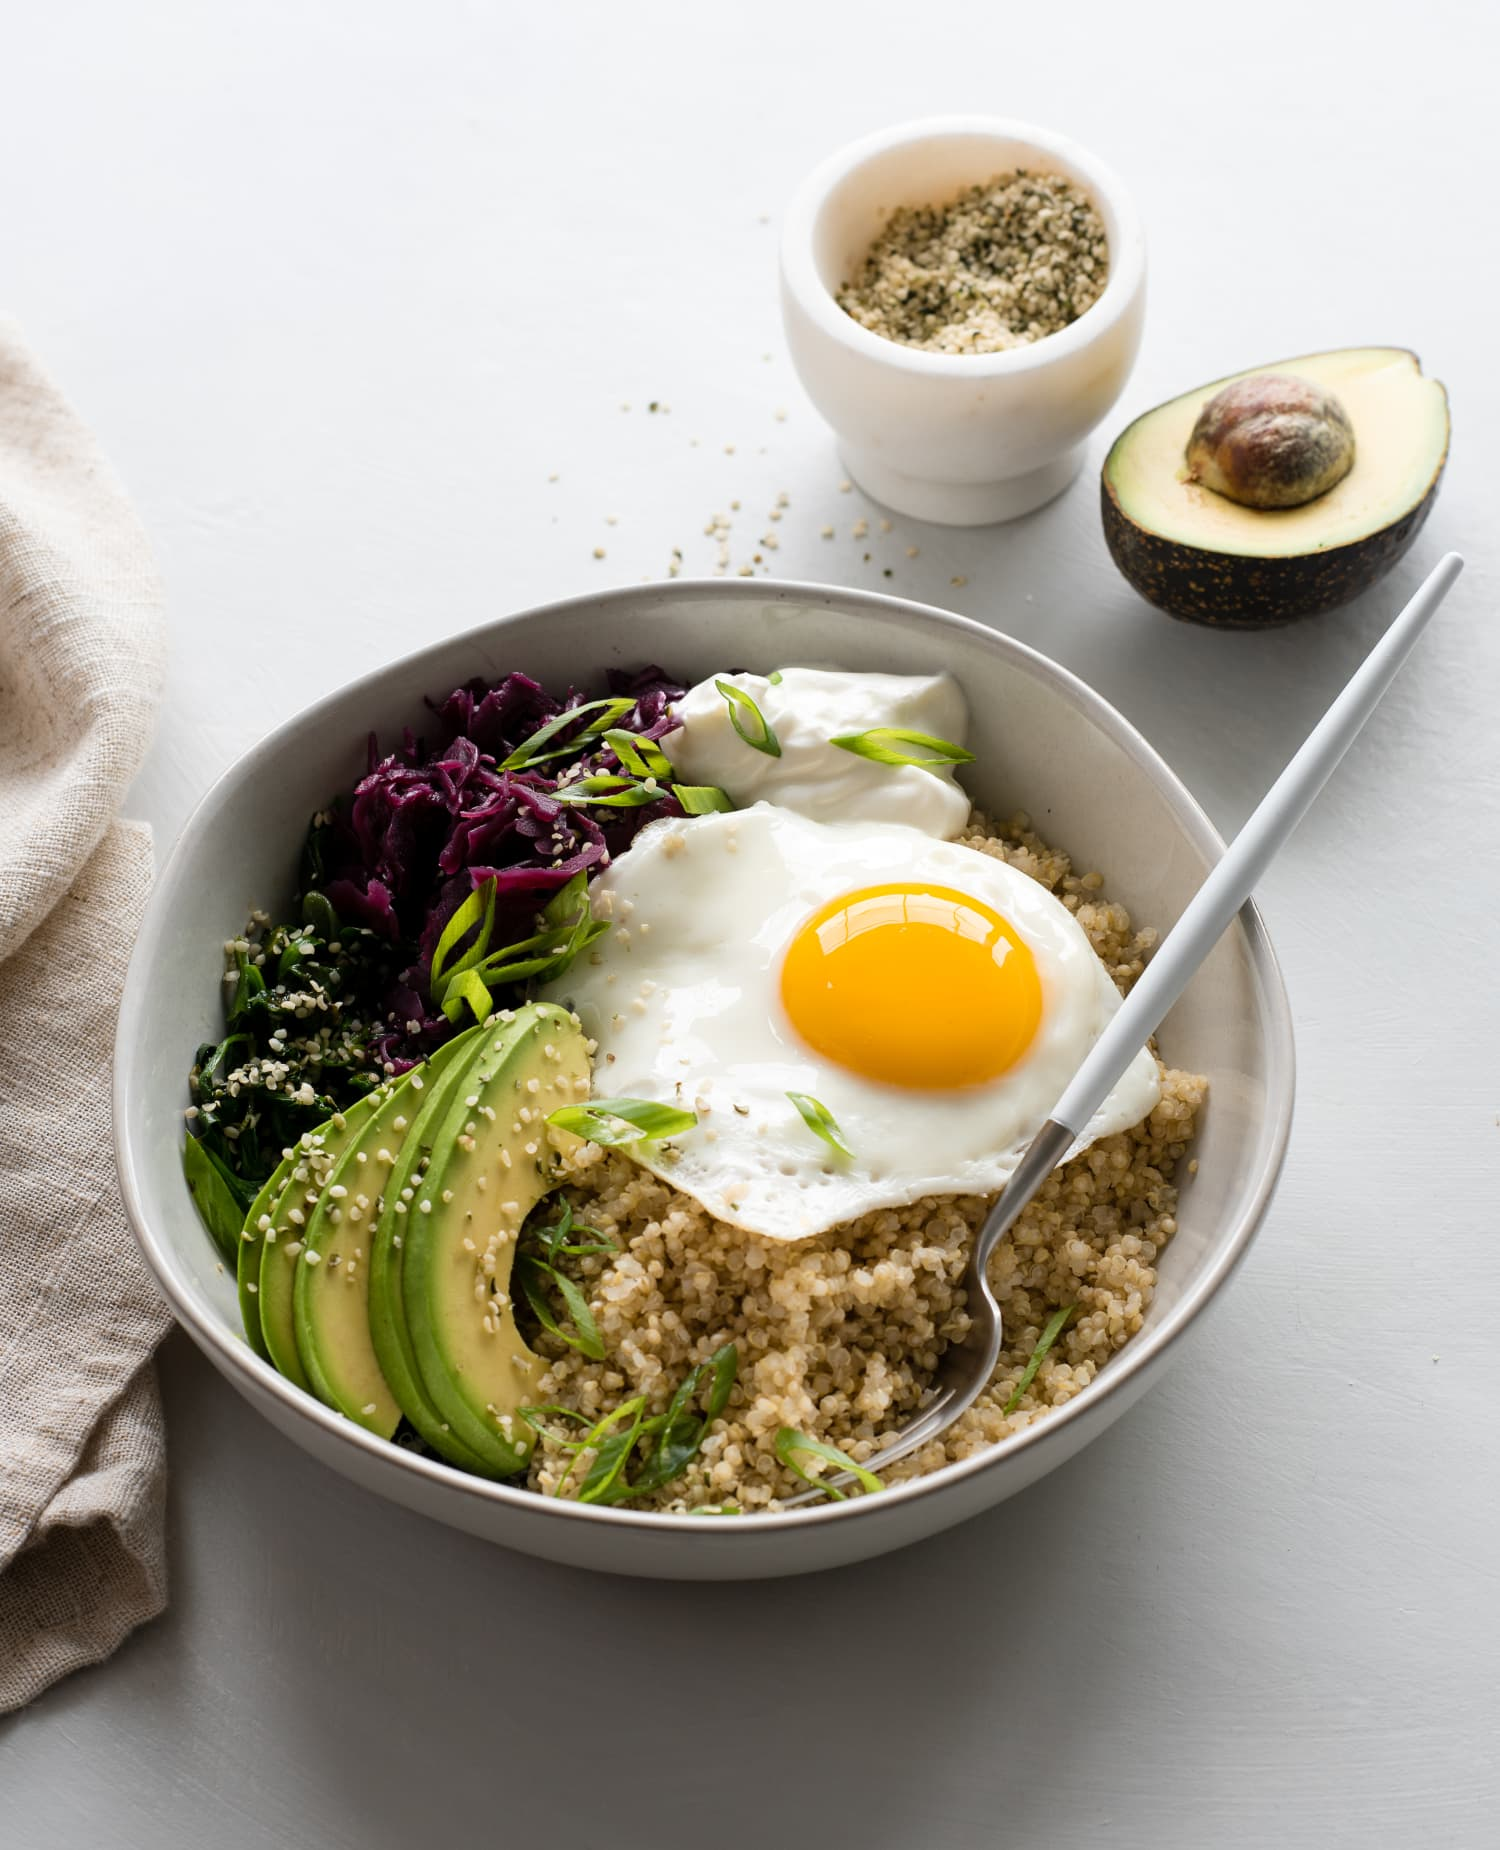 This Probiotic Breakfast Bowl Is the Best Way to Start the Day, Month, and Year